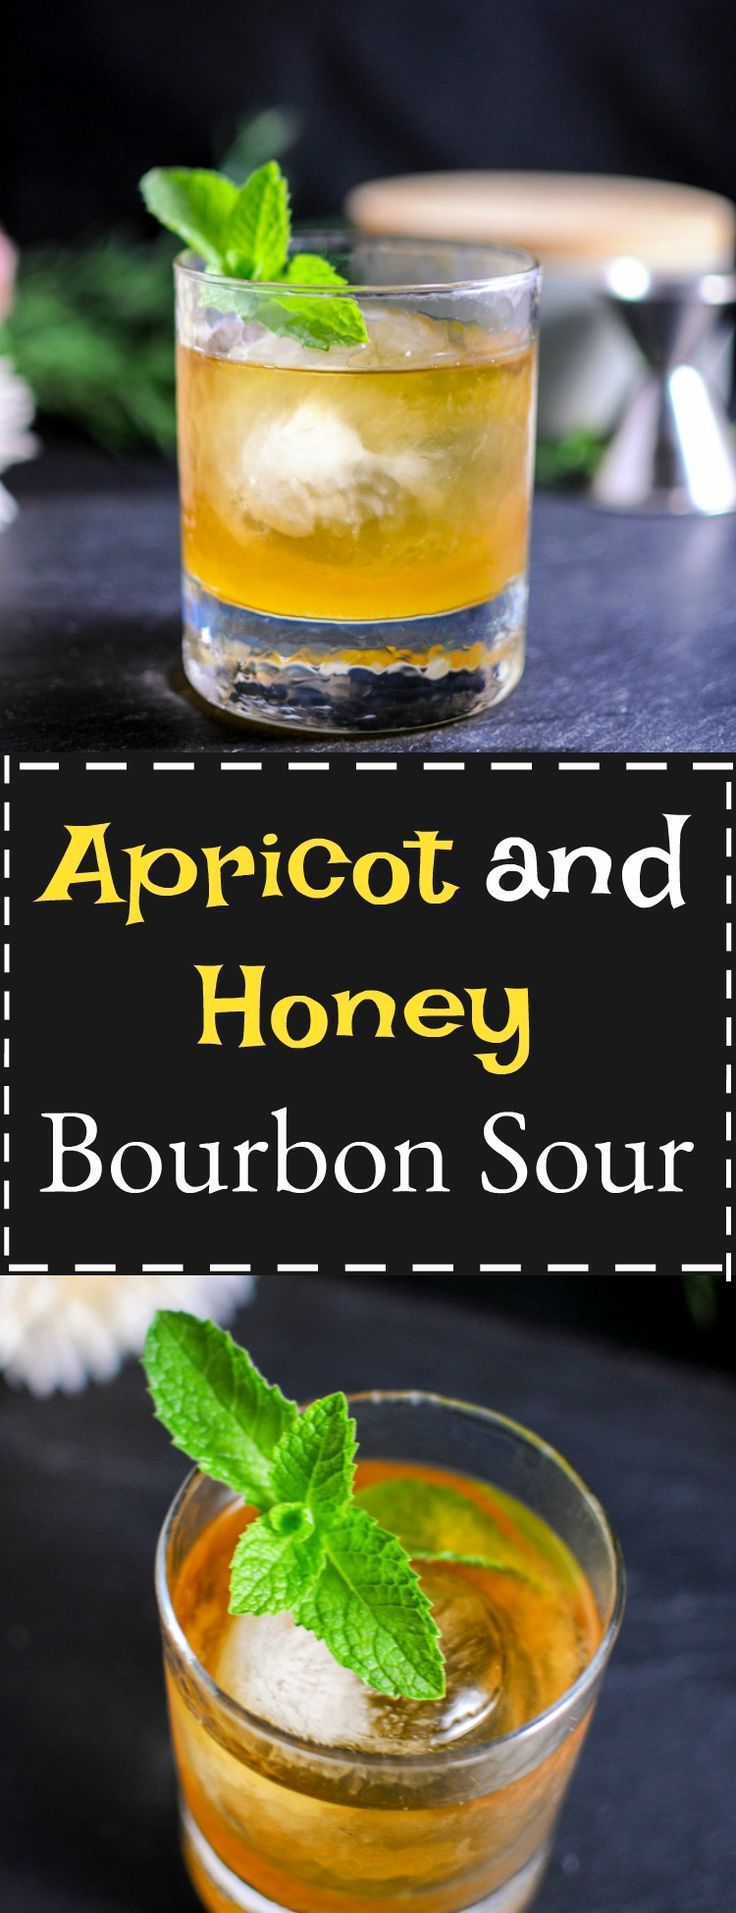 If you want a great craft cocktail, we have one for you! This Apricot and Honey Bourbon sour has the perfect touch of whiskey, but with the sweetness of honey and apricot simple syrup! Cheers!